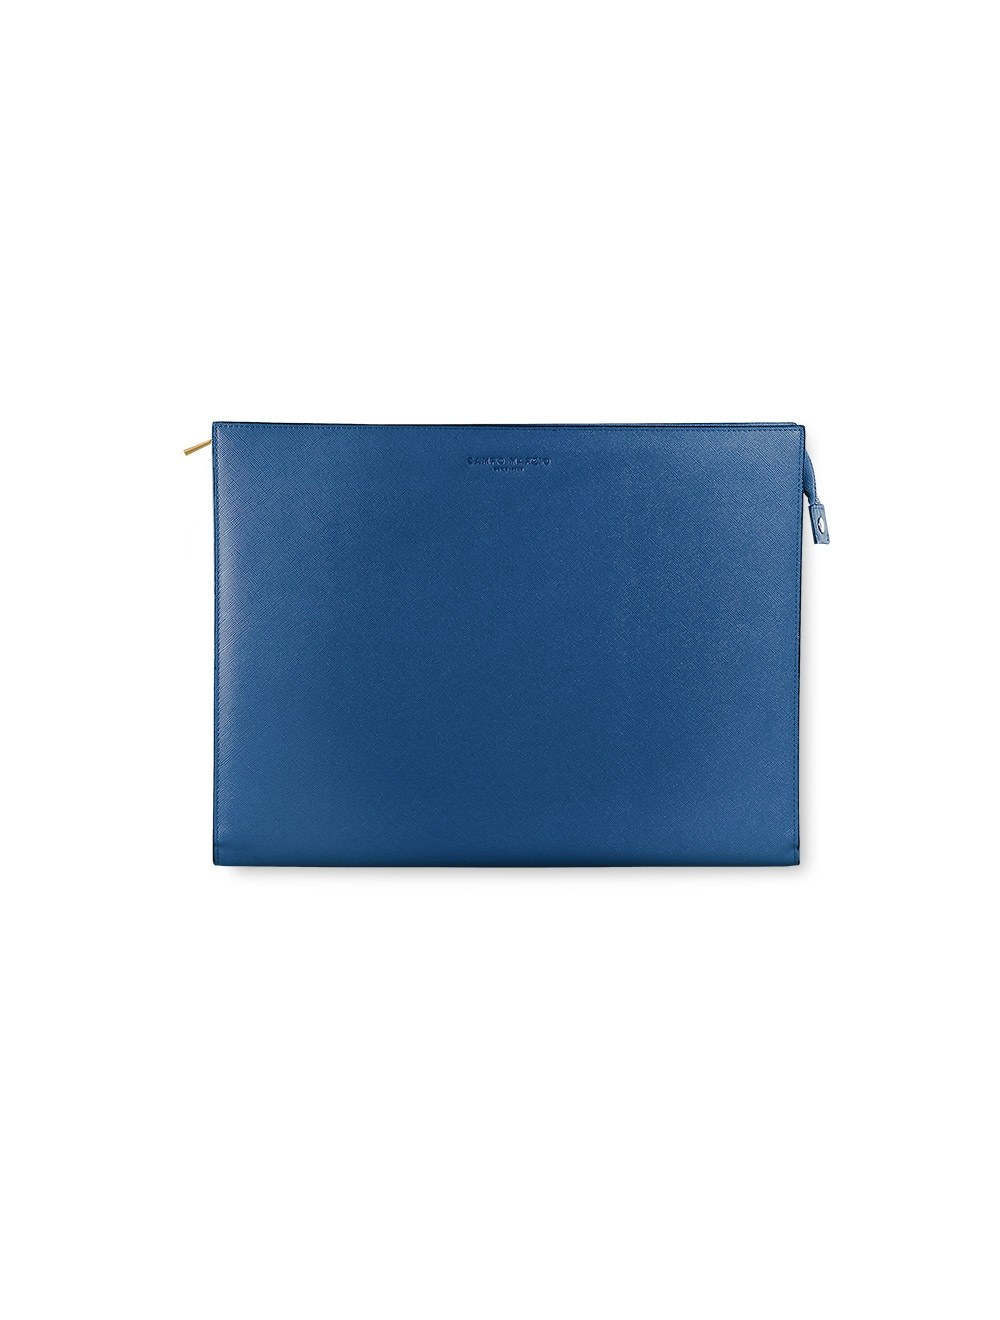 Medium Document Holder - Turquoise